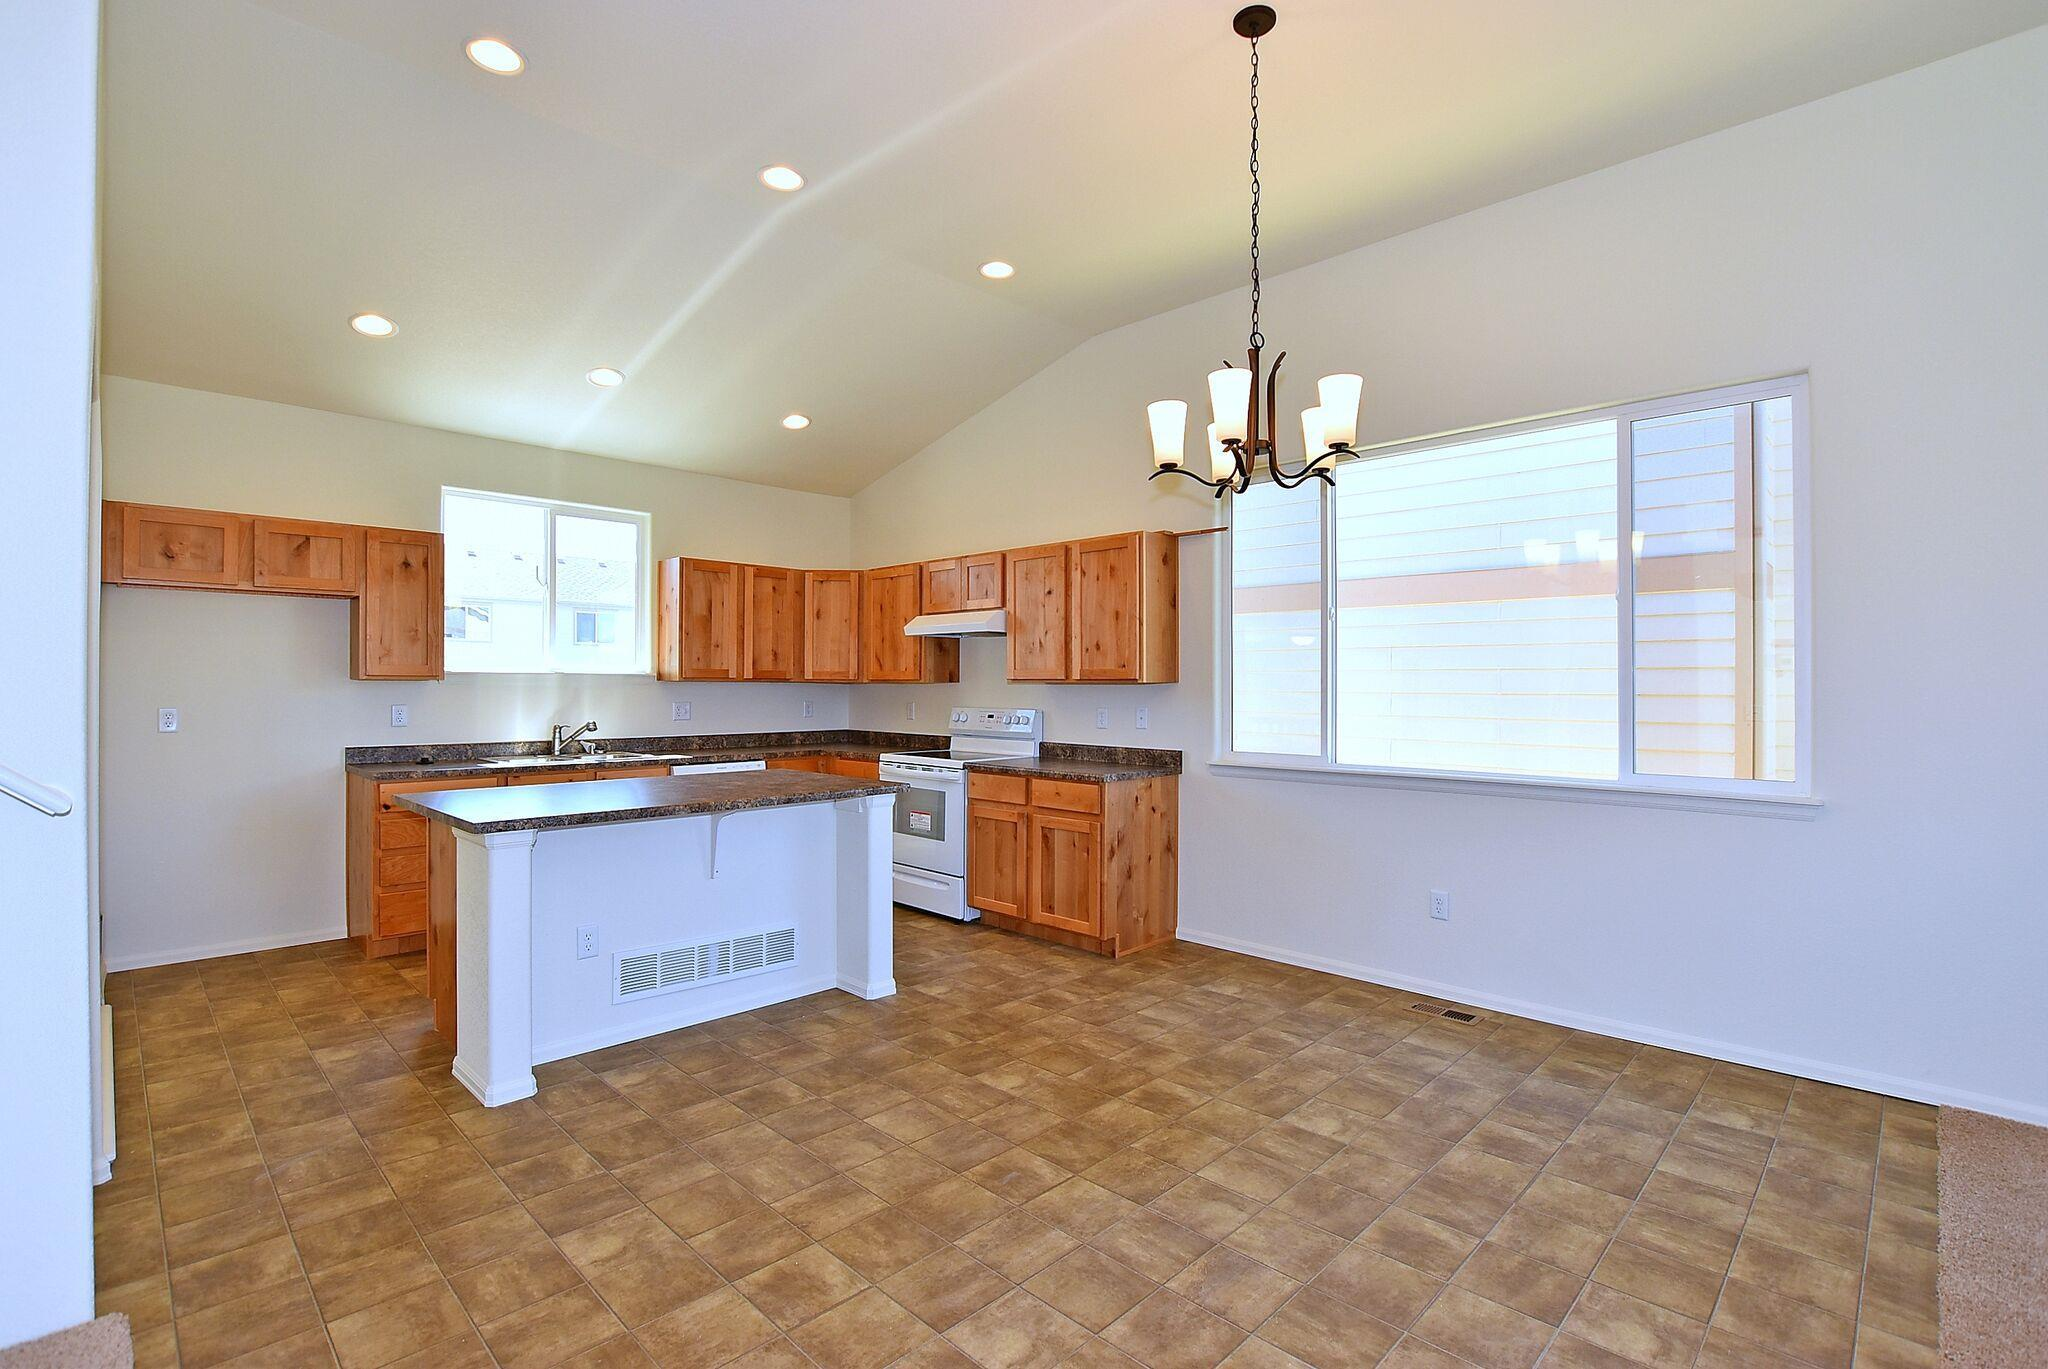 Kitchen featured in the West Virginia By Journey Homes in Fort Collins-Loveland, CO